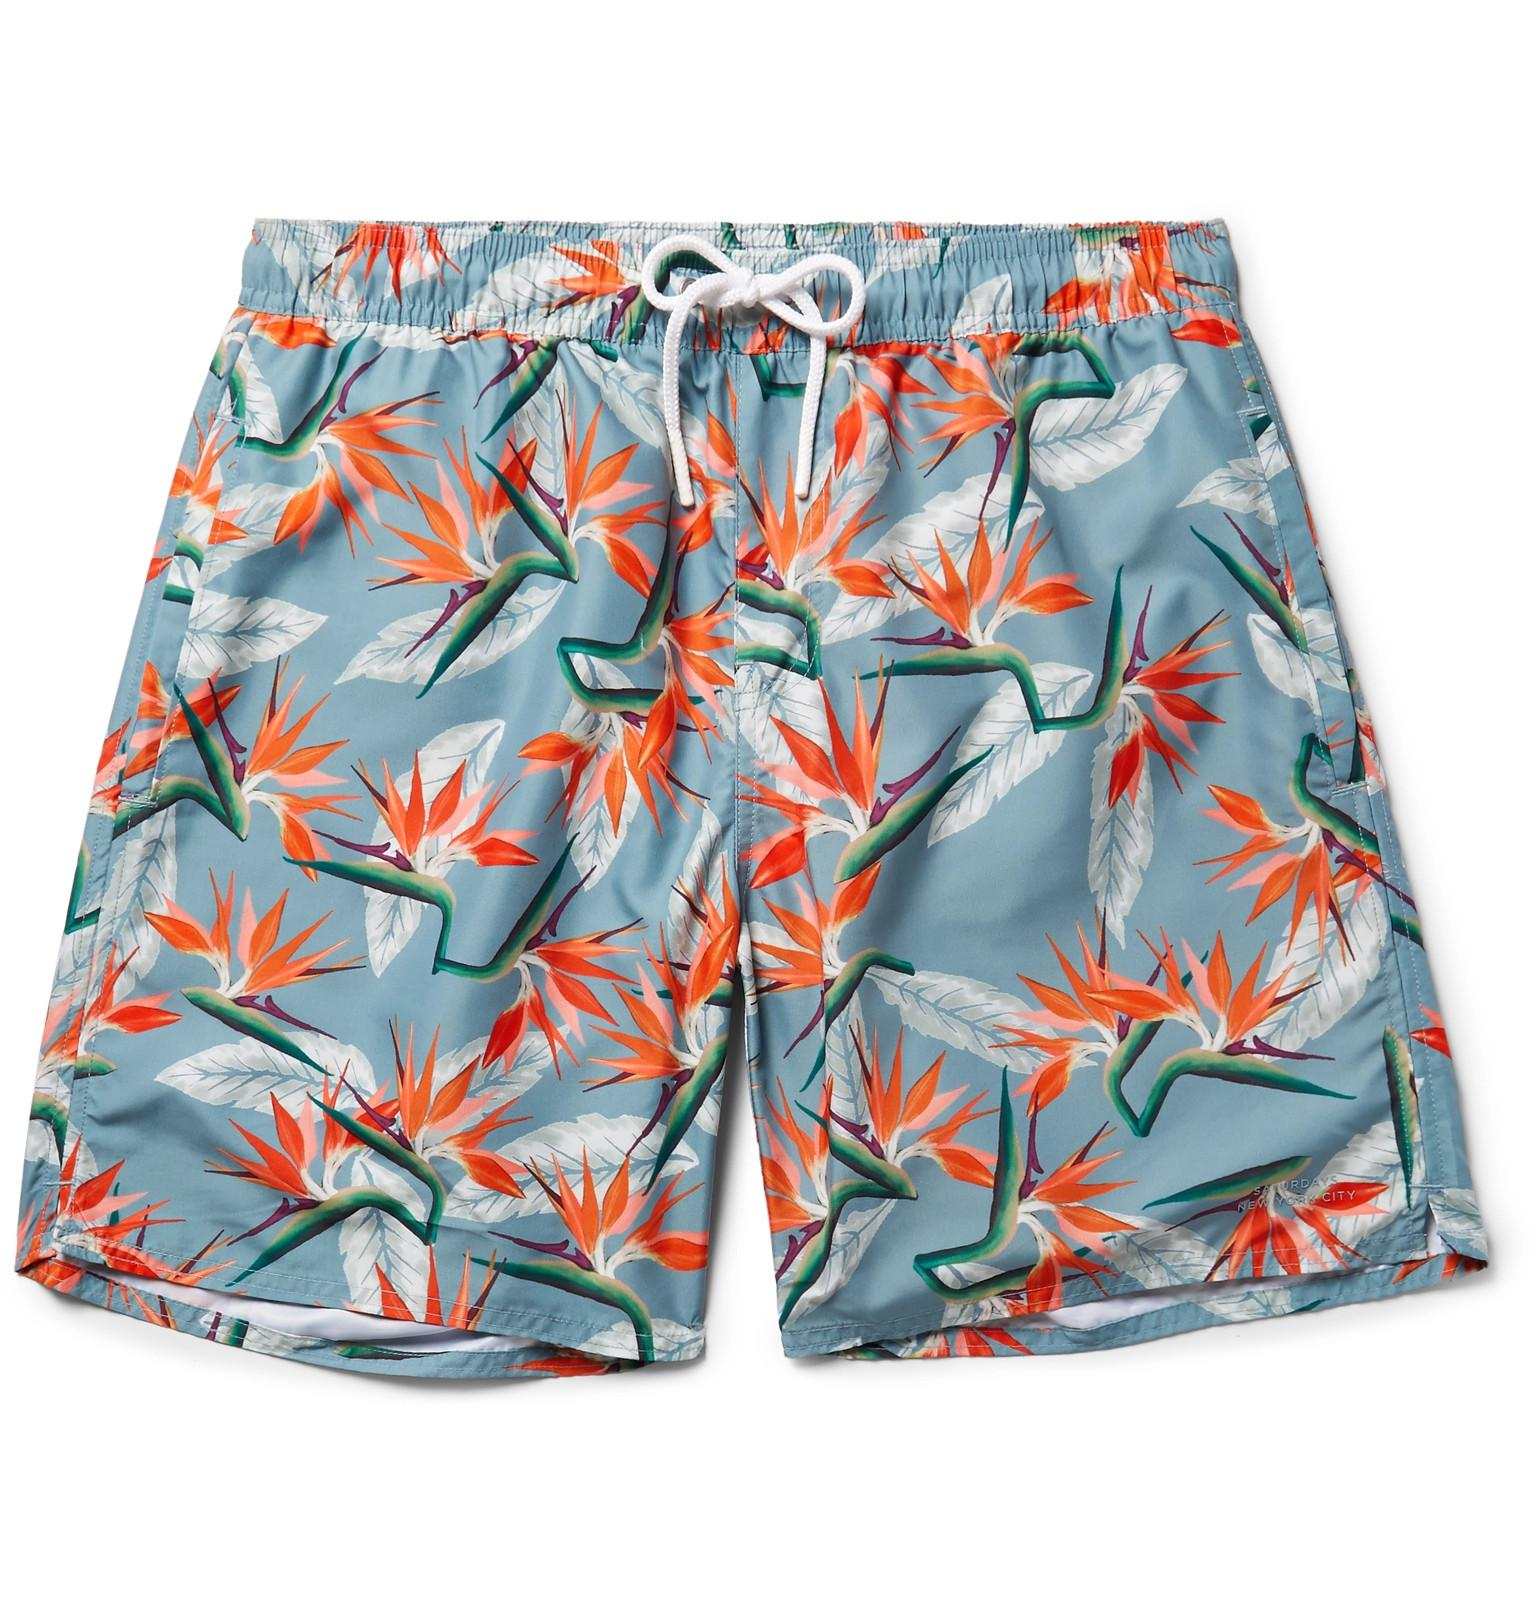 Timothy Mid-length Printed Swim Shorts Saturdays Surf NYC Outlet Store Cheap Price Comfortable Sale Online Free Shipping Outlet P9clUikRO